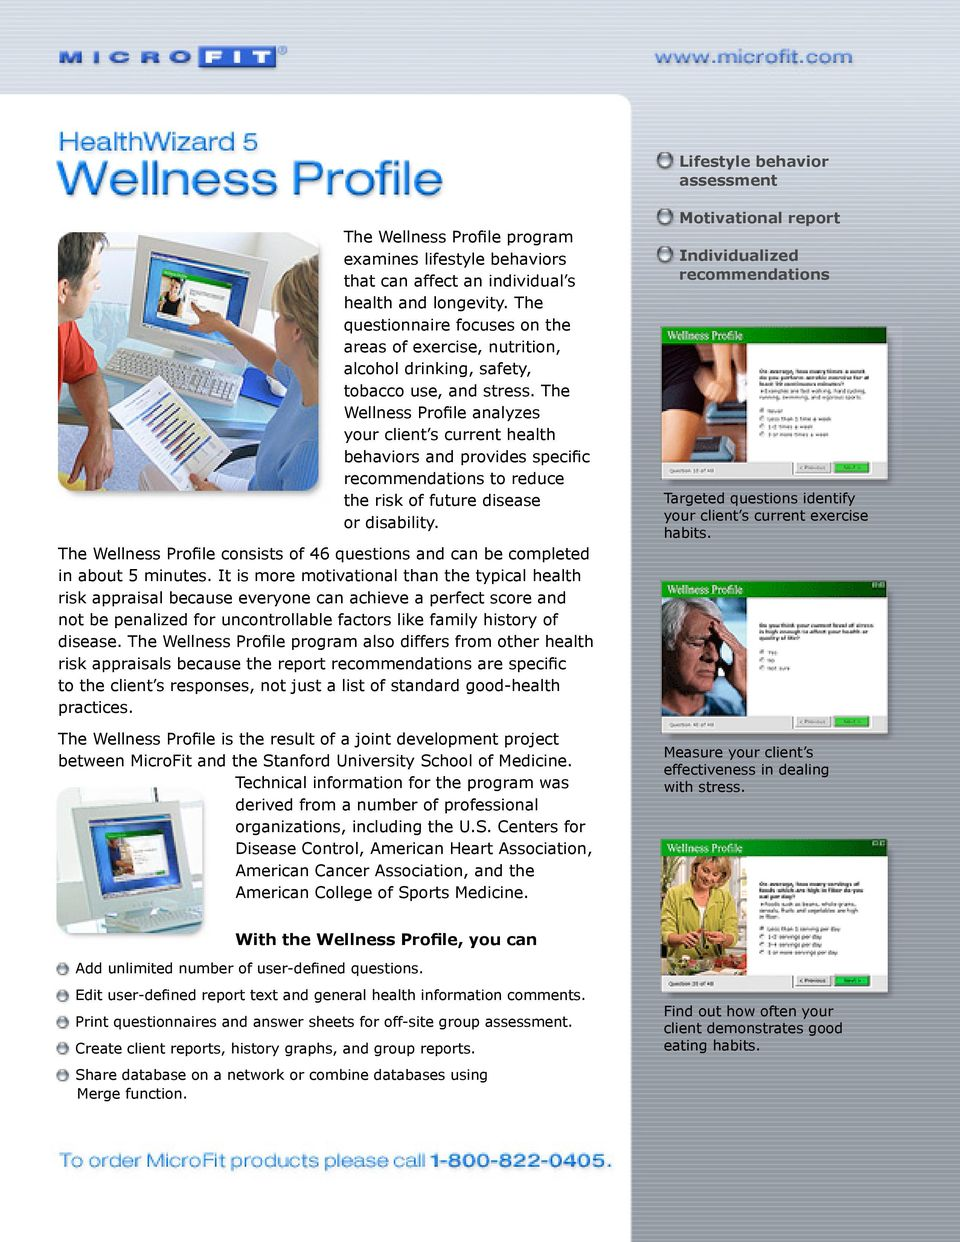 The Wellness Profile analyzes your client s current health behaviors and provides specific recommendations to reduce the risk of future disease or disability.